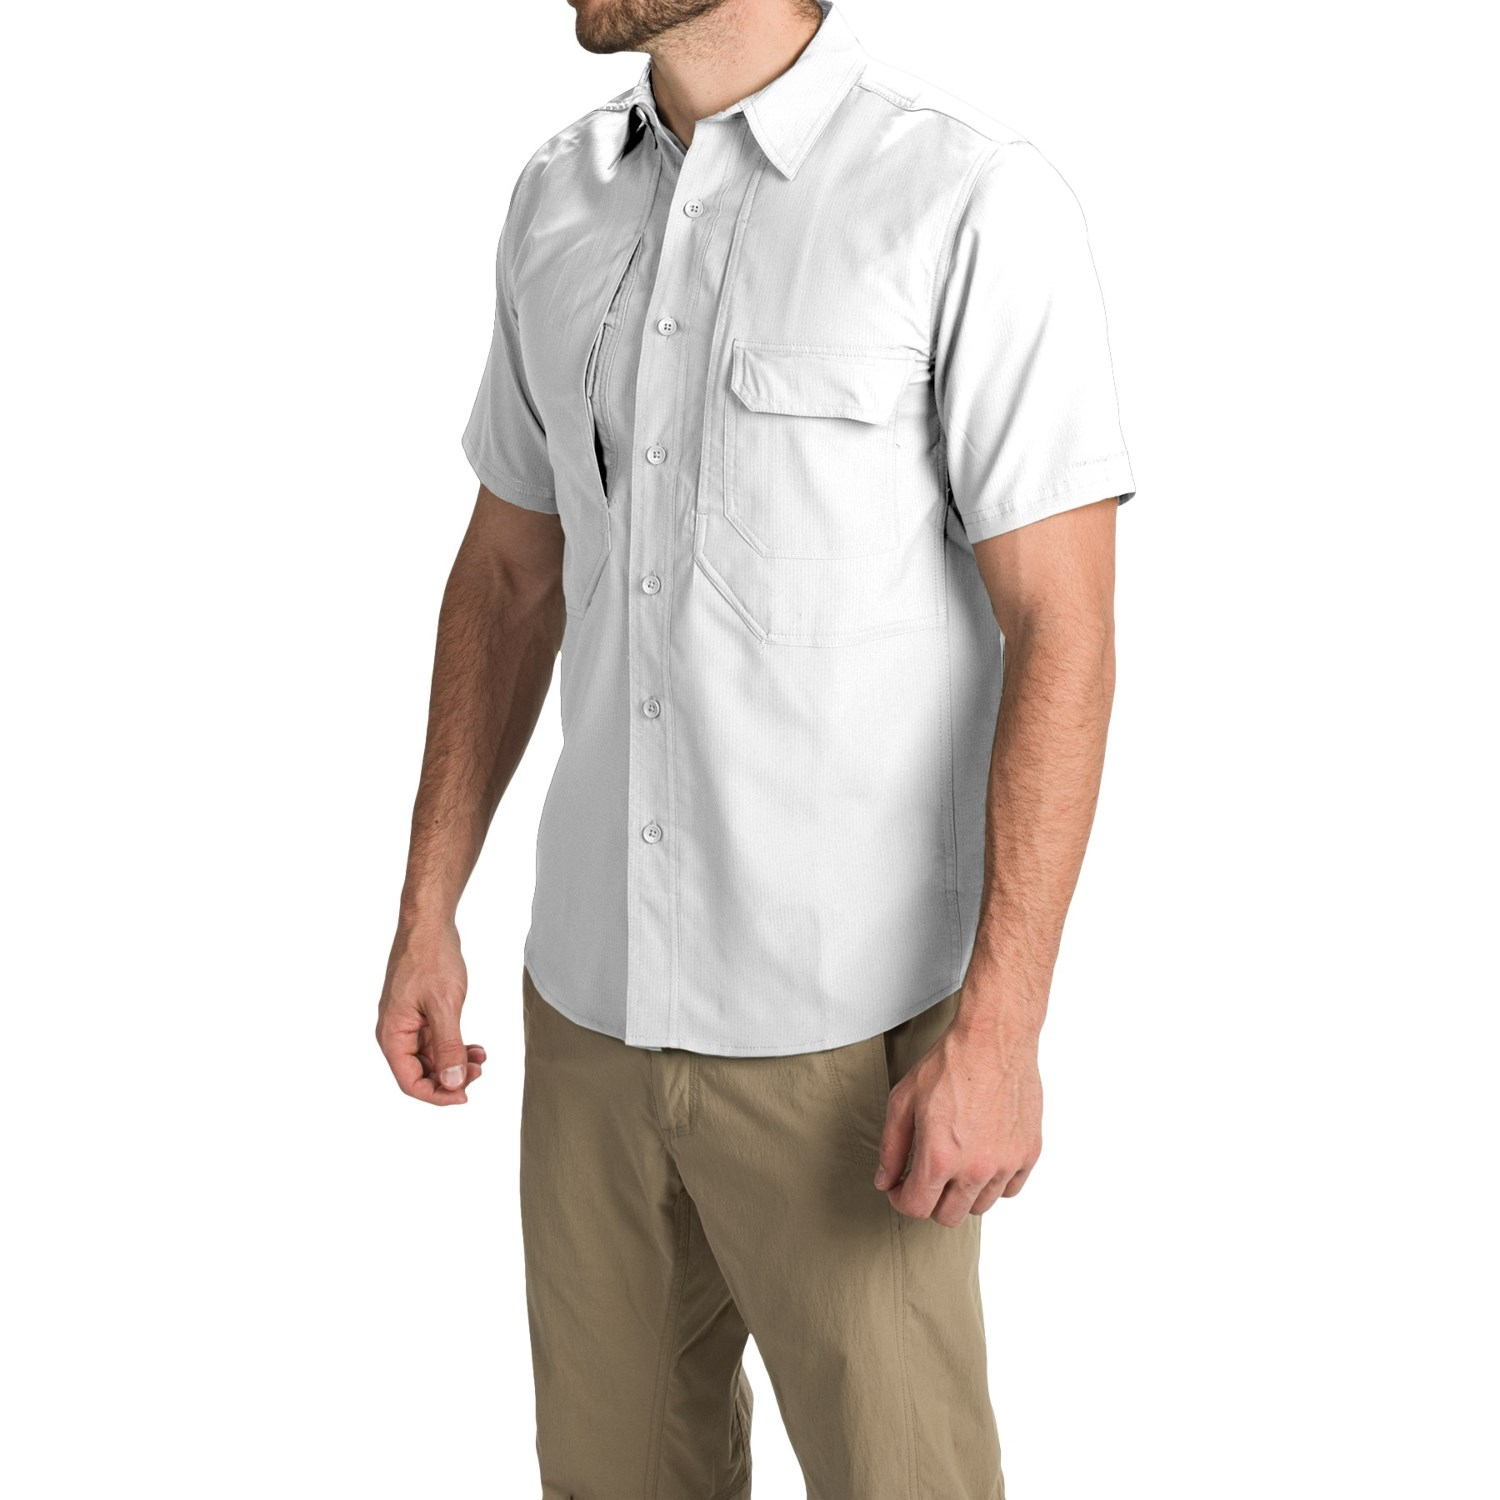 Stretch Dress Shirts for Men at Macy's come in a variety of styles and sizes. Shop top brands for Men's Dress Shirts and find the perfect fit today.